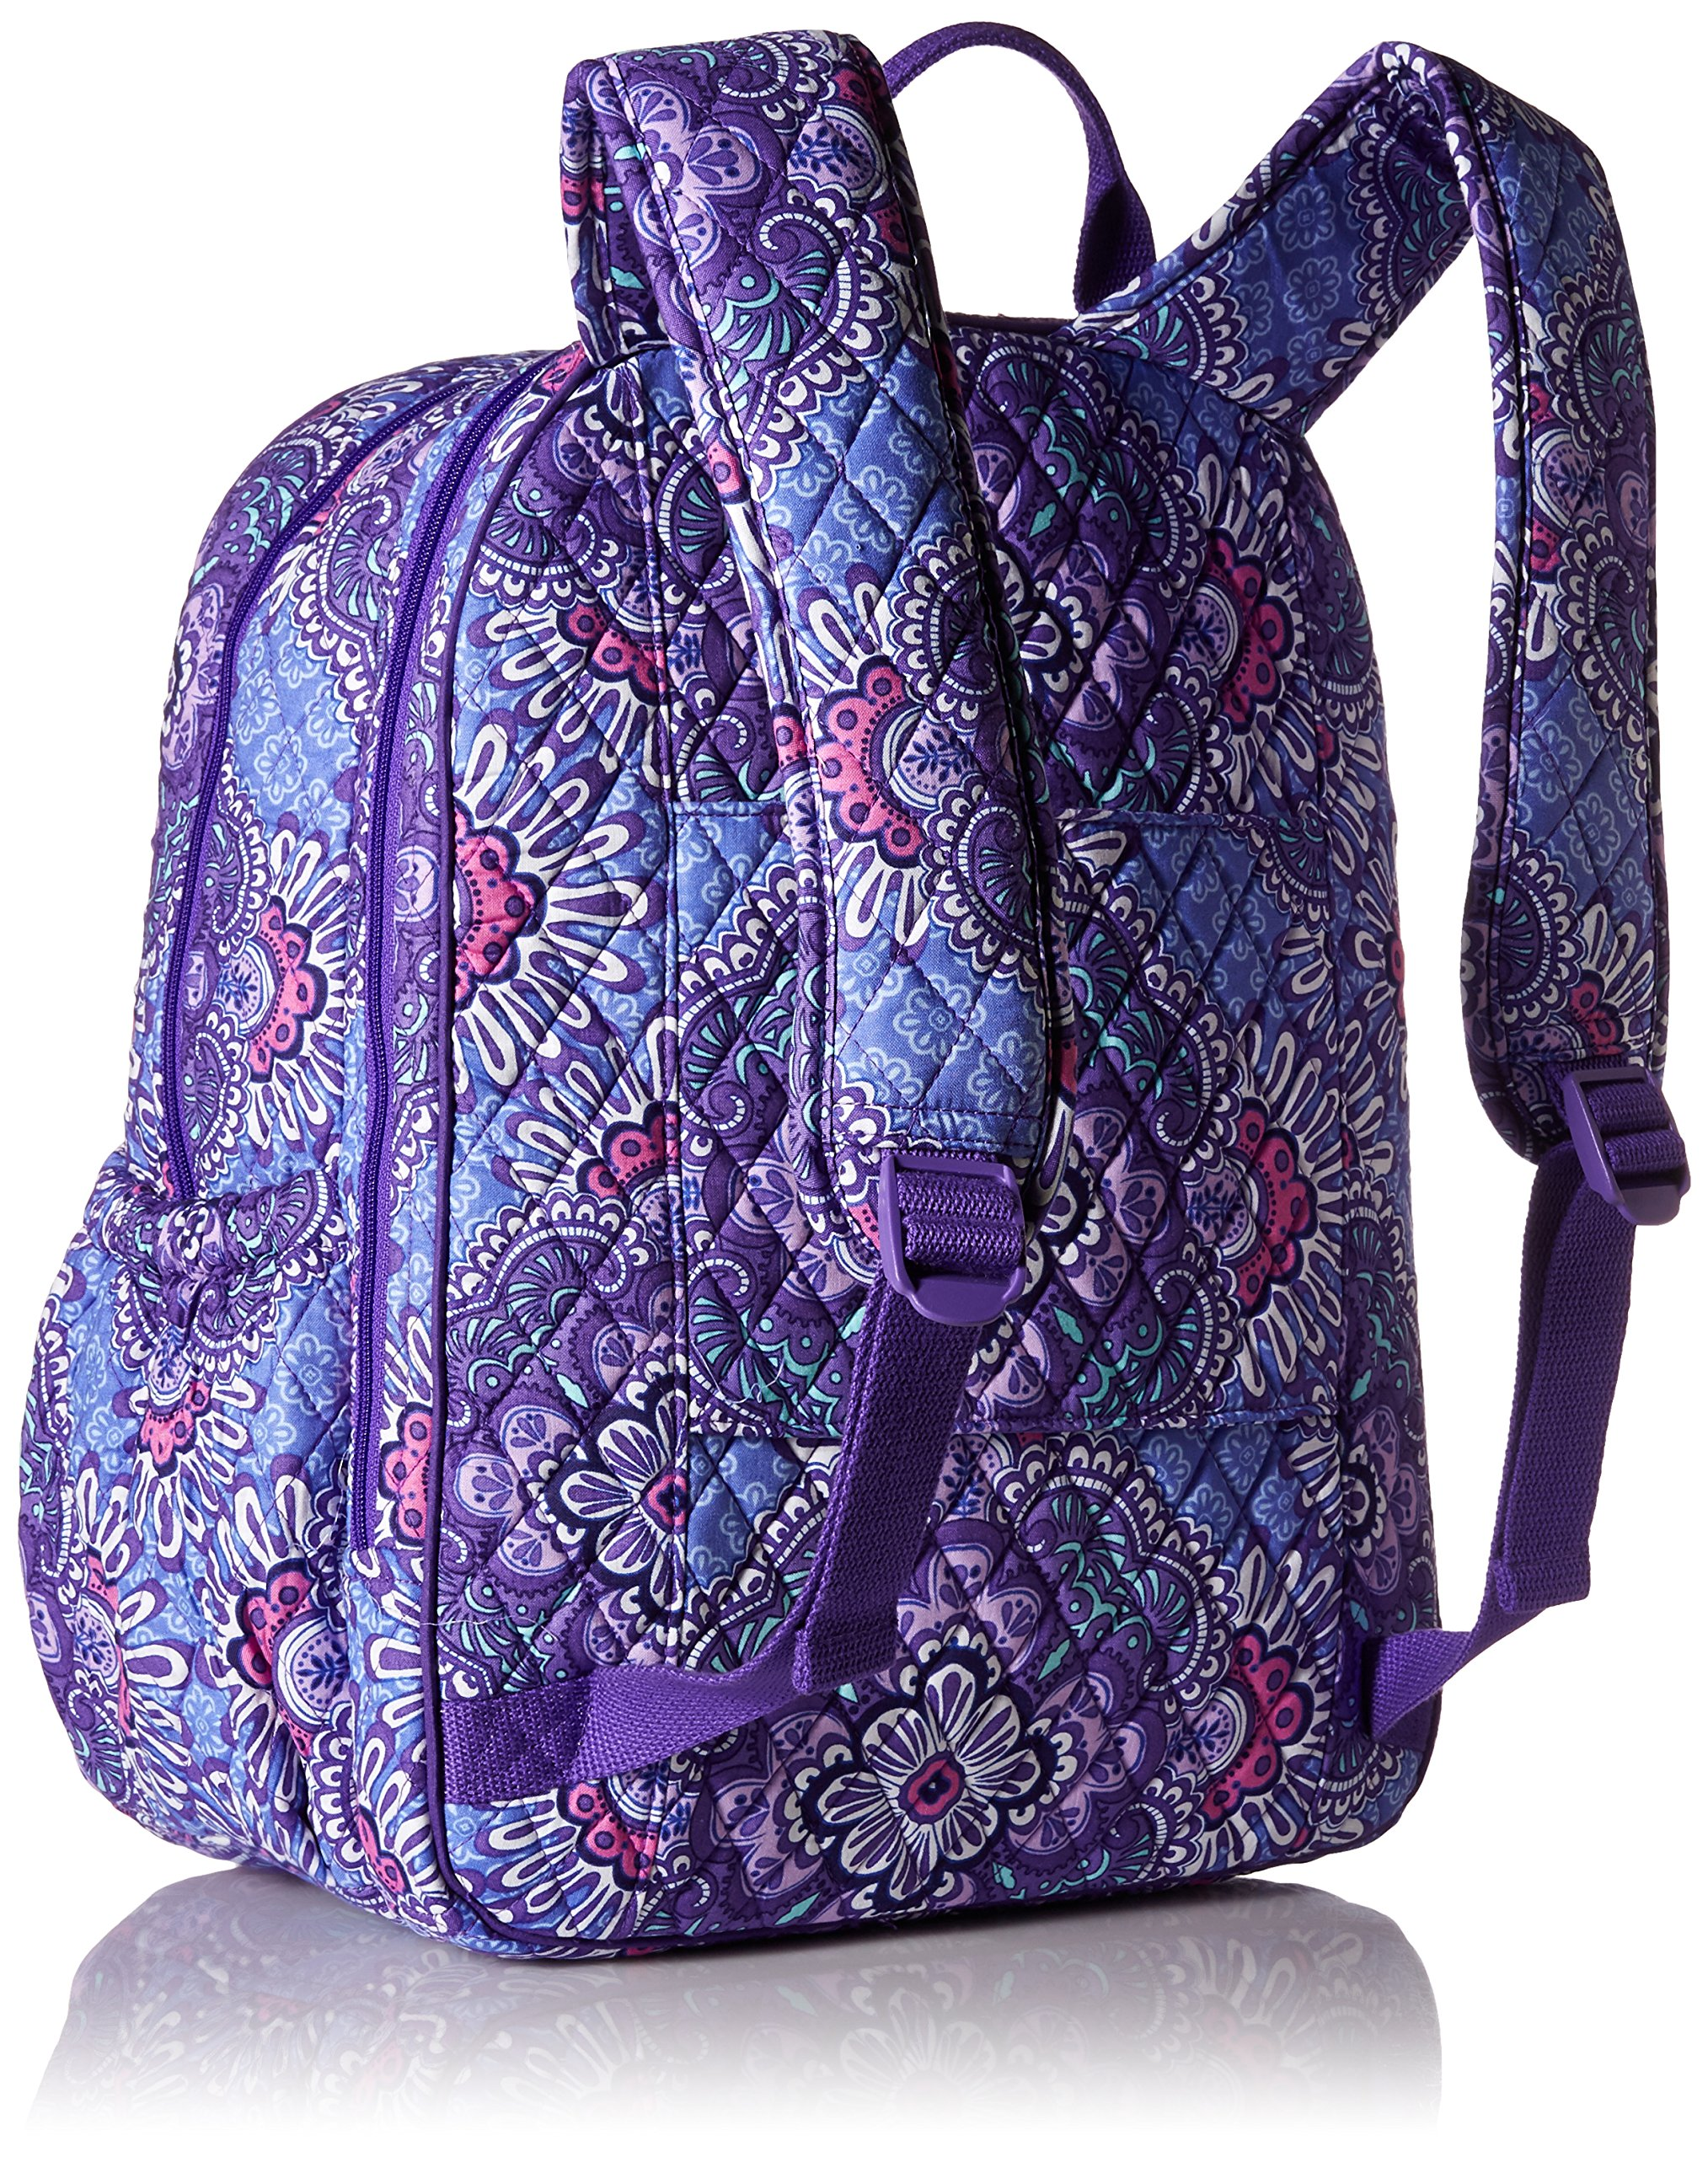 Women's Campus Tech Backpack, Signature Cotton, Lilac Tapestry by Vera Bradley (Image #4)